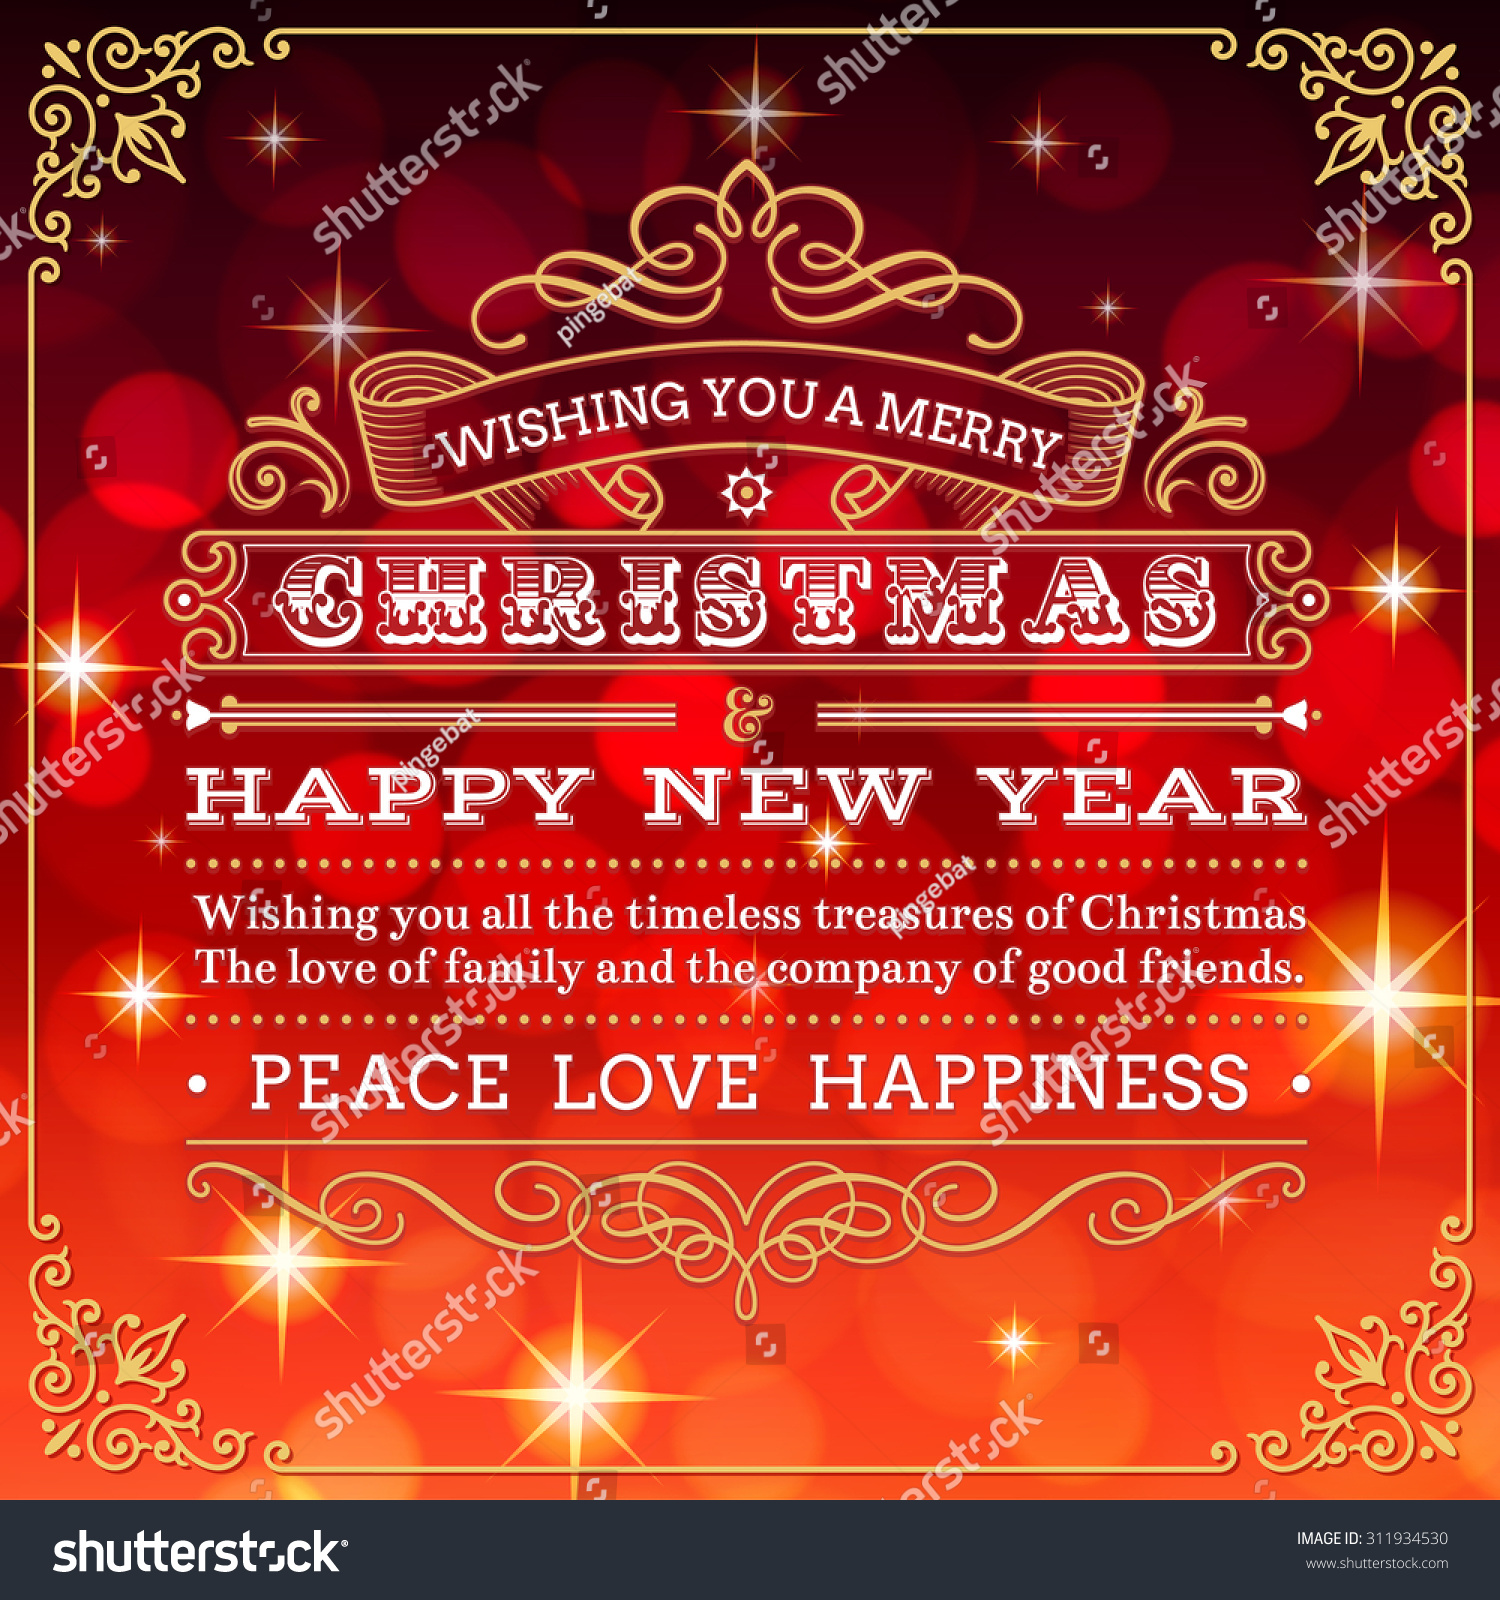 Nice Christmas Greeting Card Red Background Stock Vector (Royalty ...